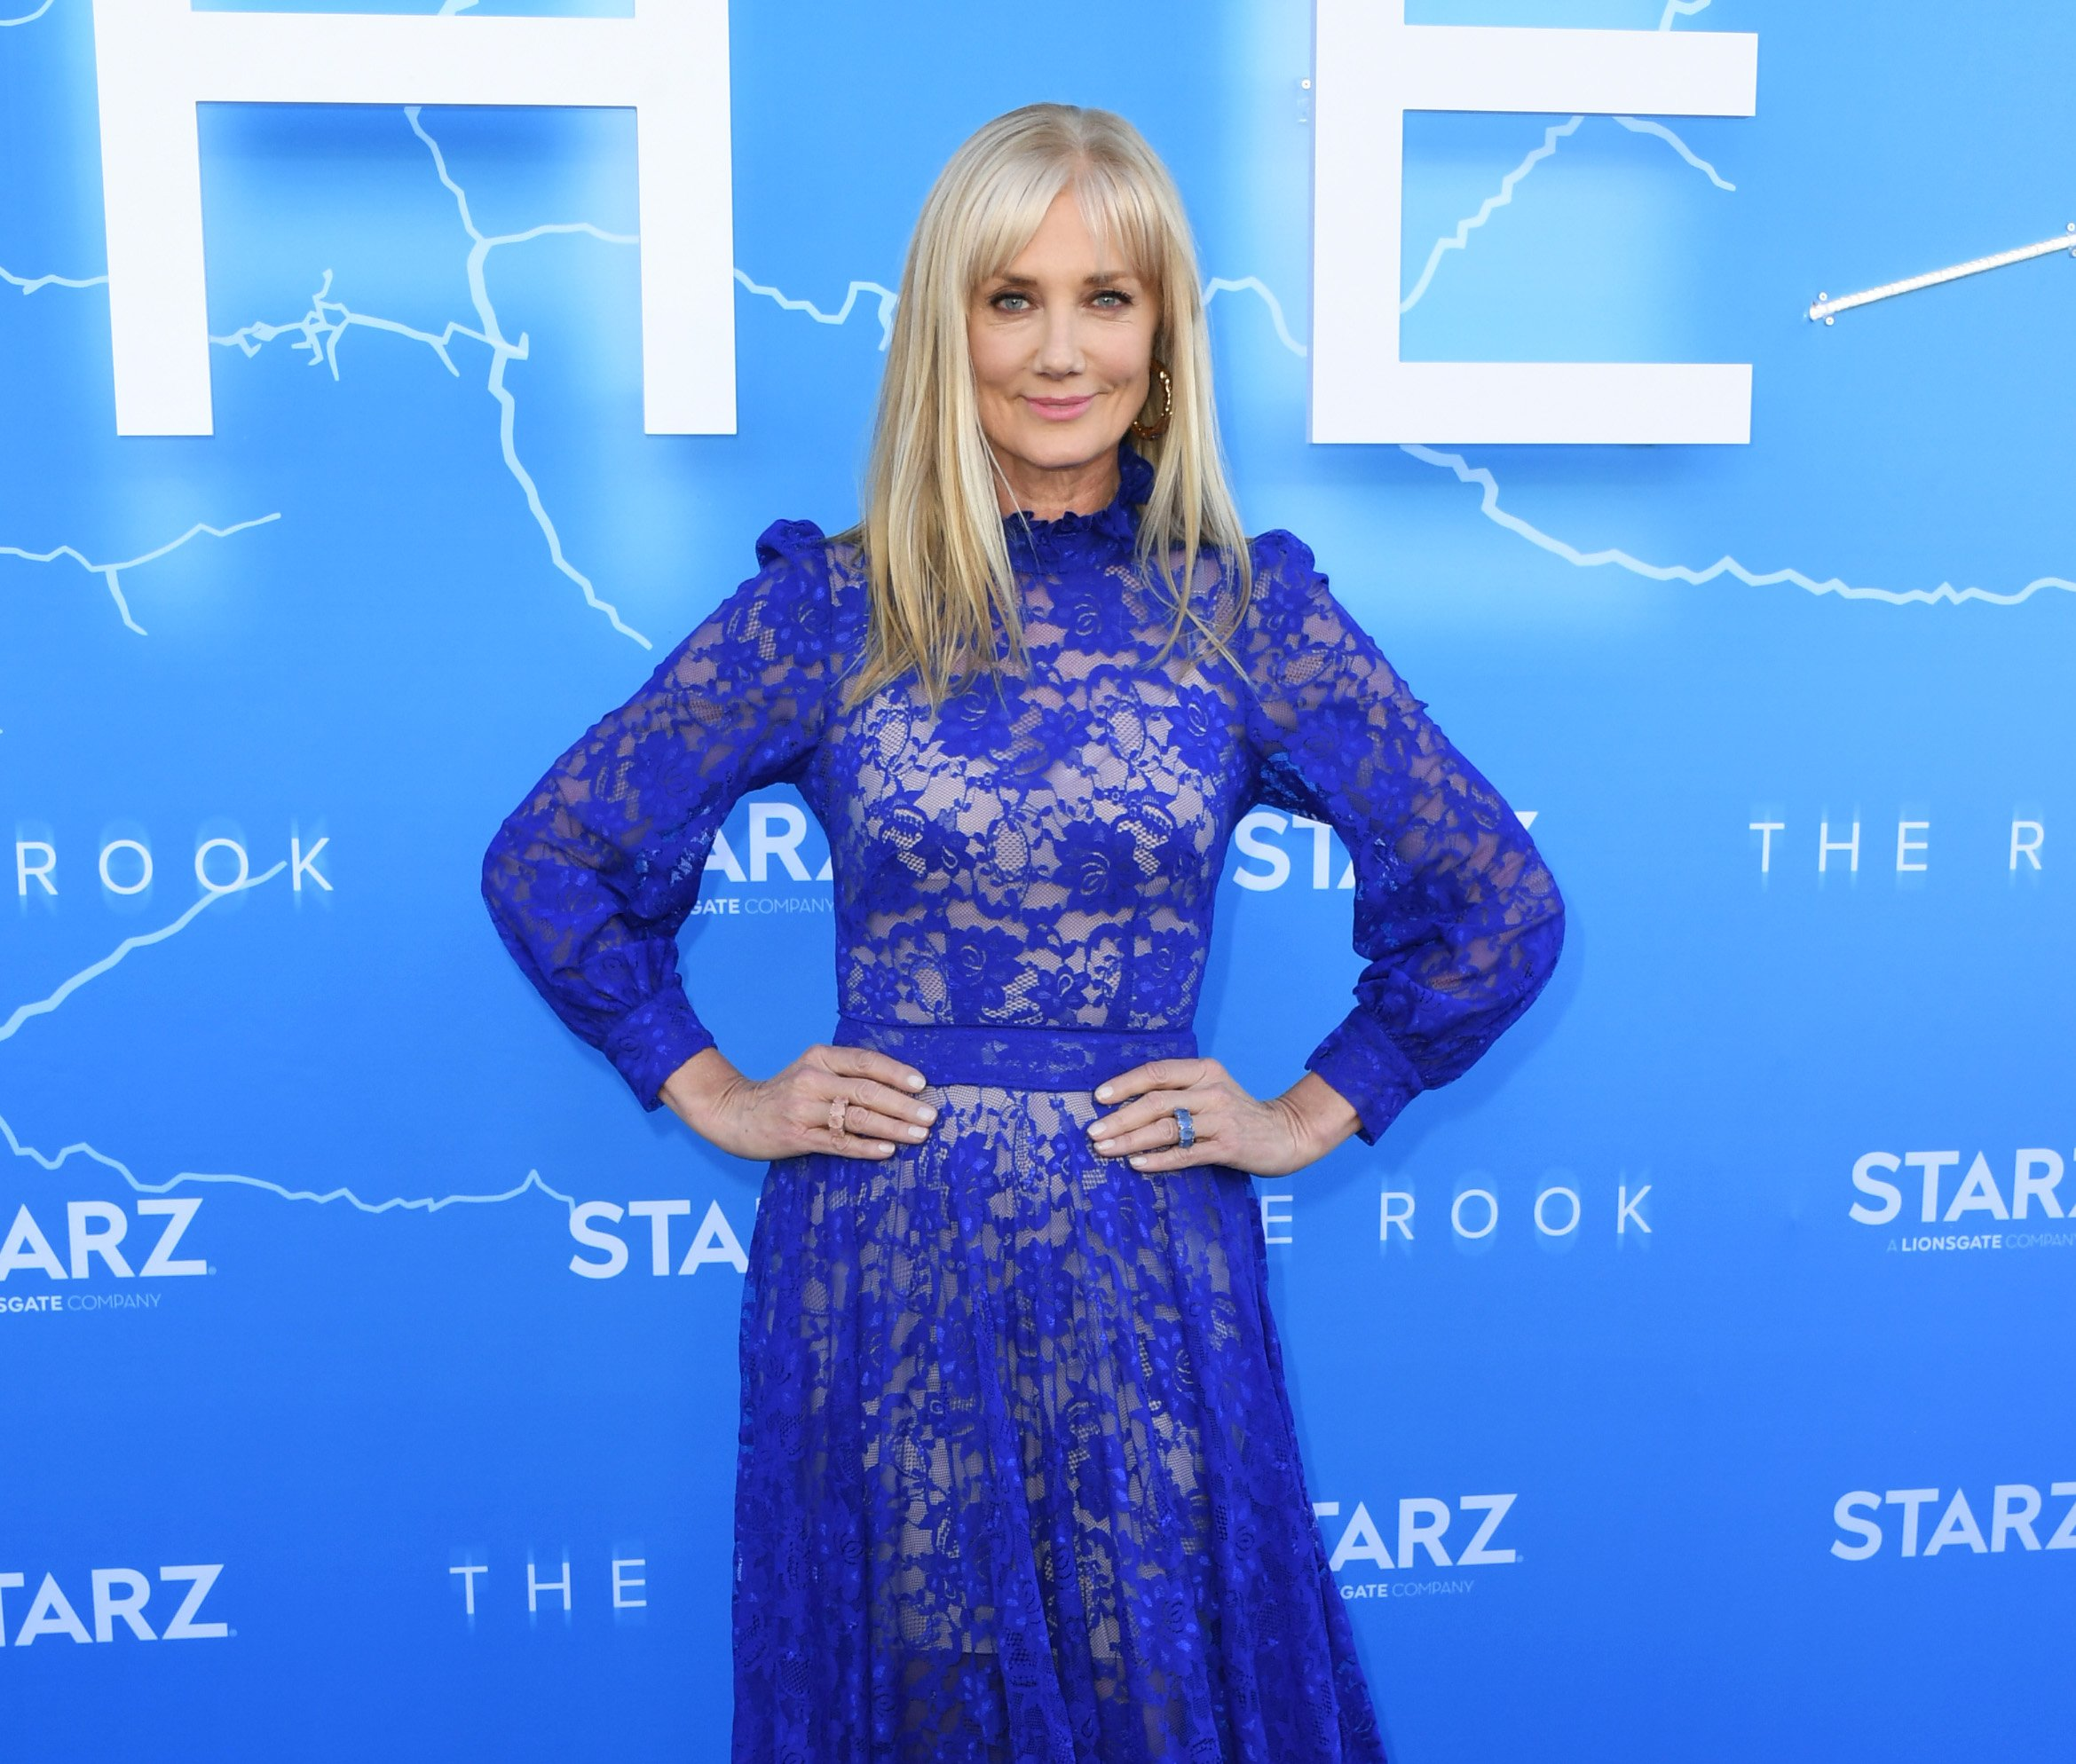 """Joely Richardson attends LA Premiere Of Starz's """"The Rook"""" at The Getty Museum on June 17, 2019, in Los Angeles, California. 